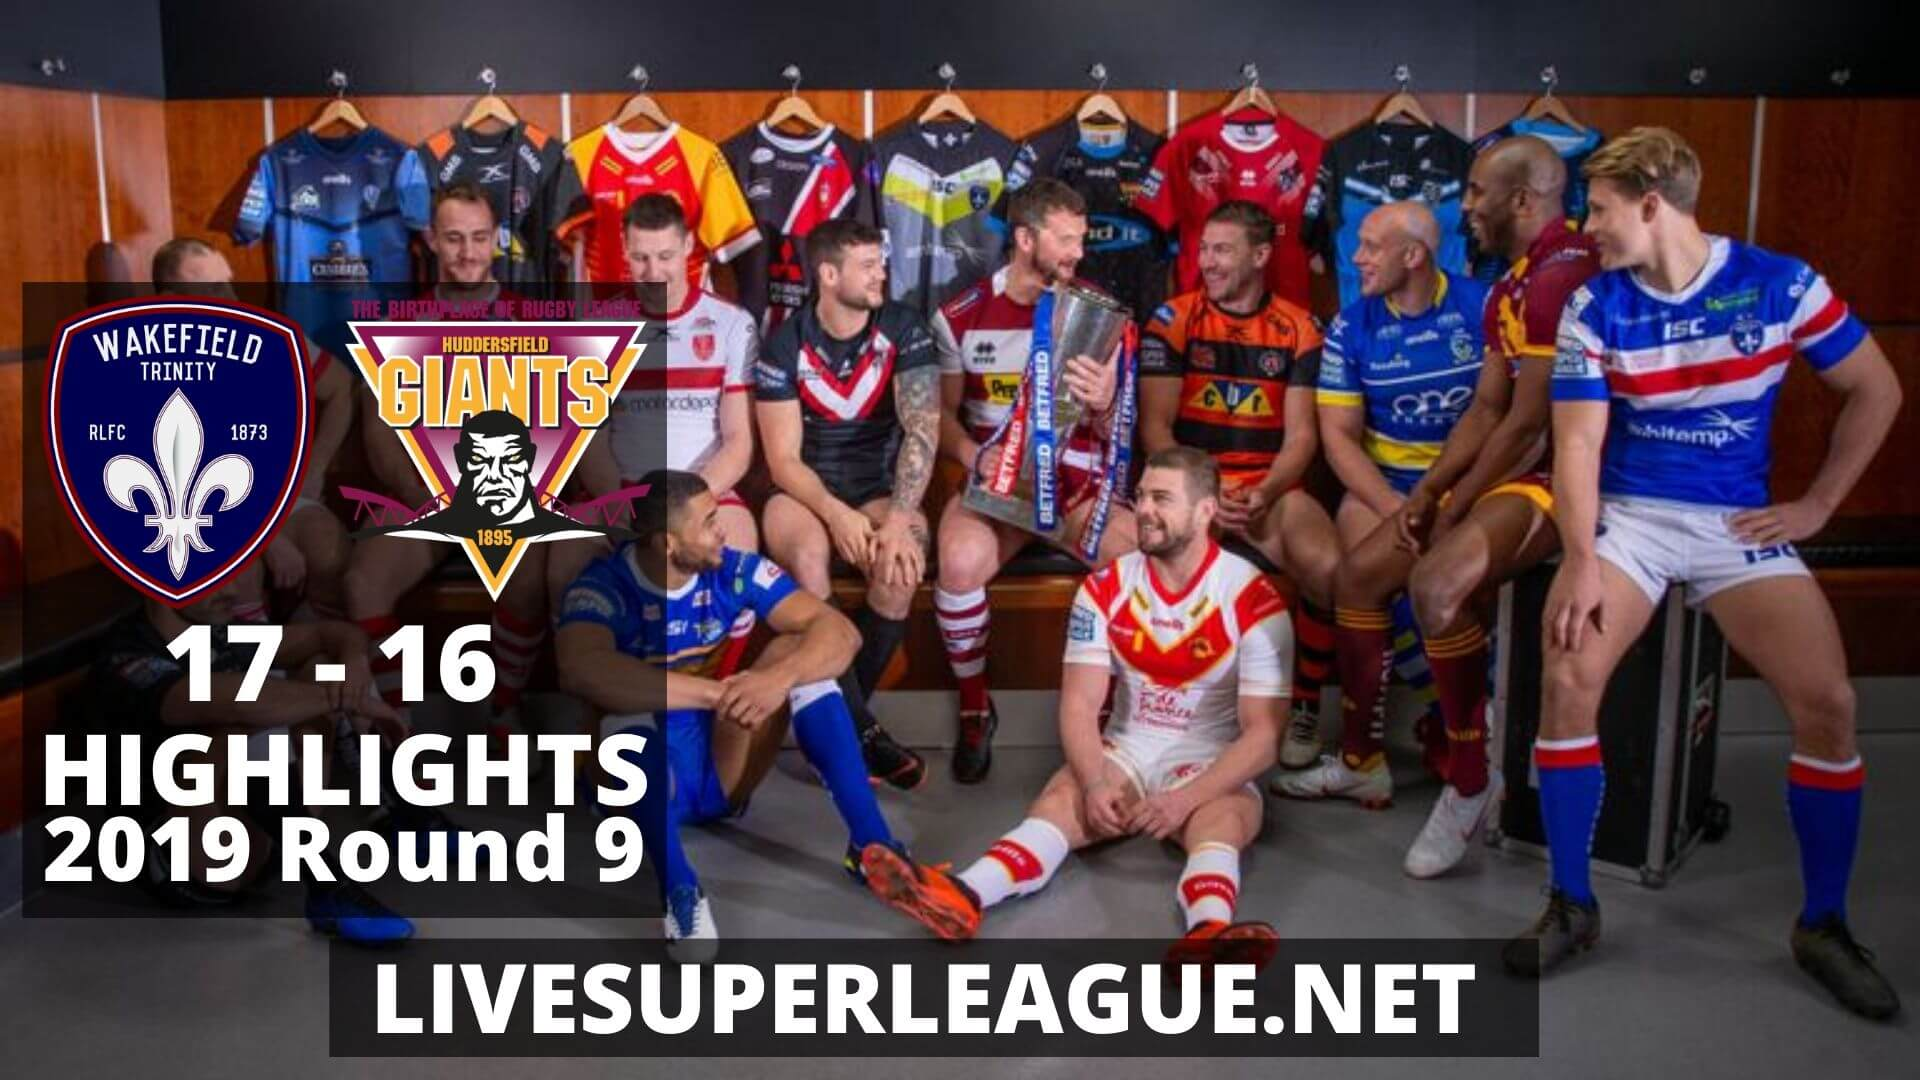 Wakefield Trinity vs Huddersfield Giants Highlights 2019 Round 9